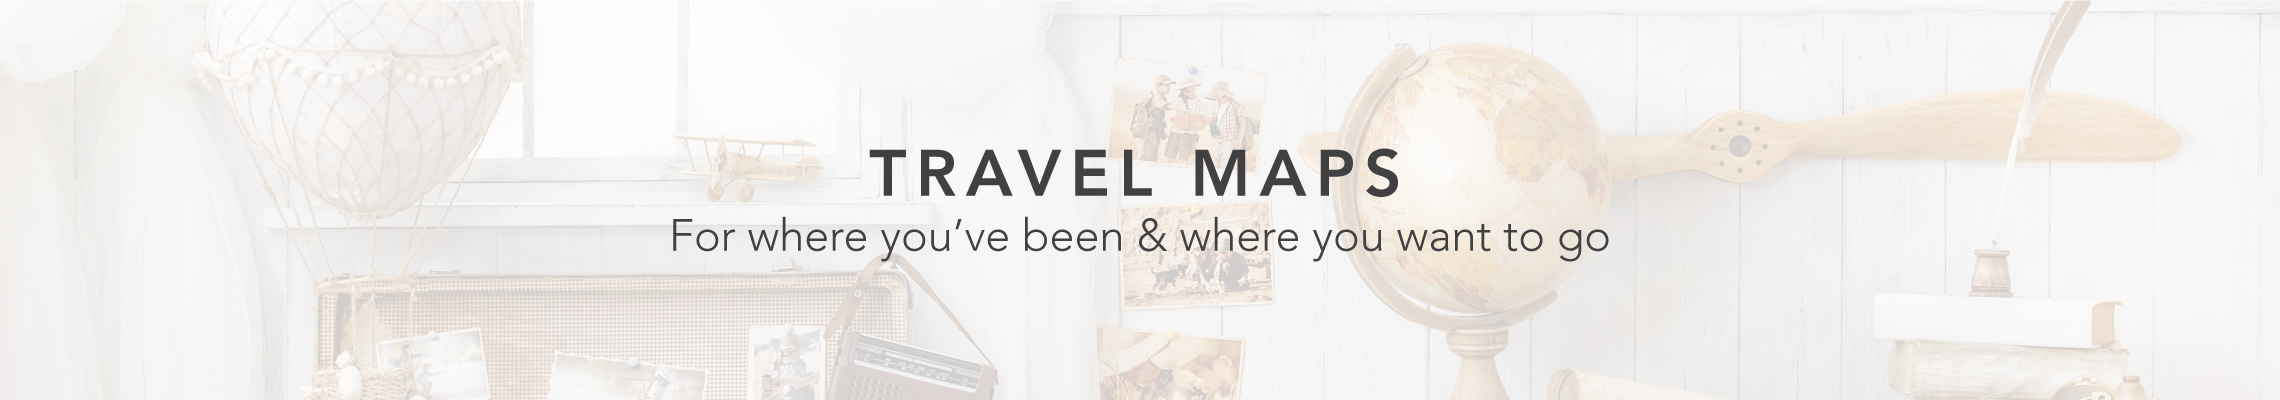 New Travel Maps now available!